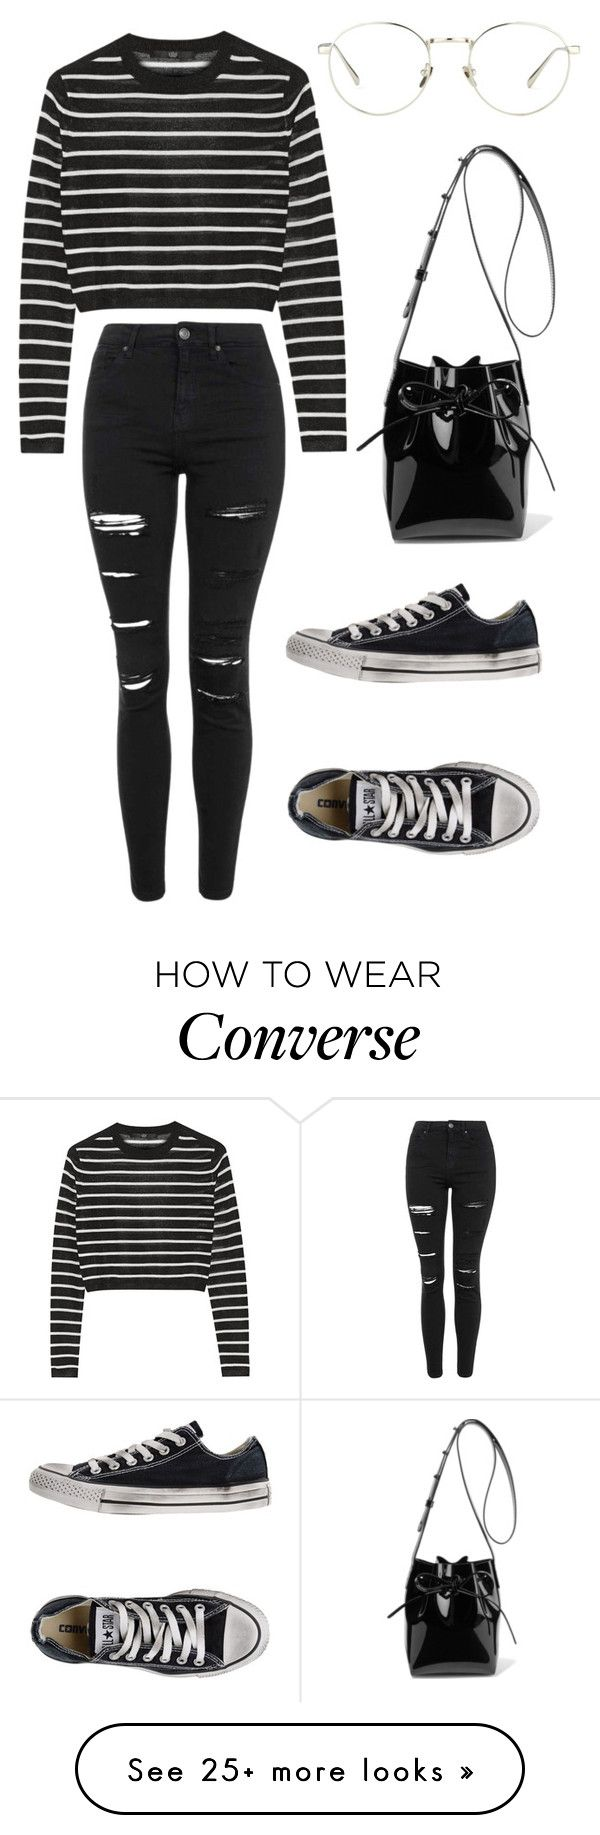 """Susi"" by saradiamondlovee on Polyvore featuring TIBI, Topshop, Converse, Linda Farrow and Mansur Gavriel"